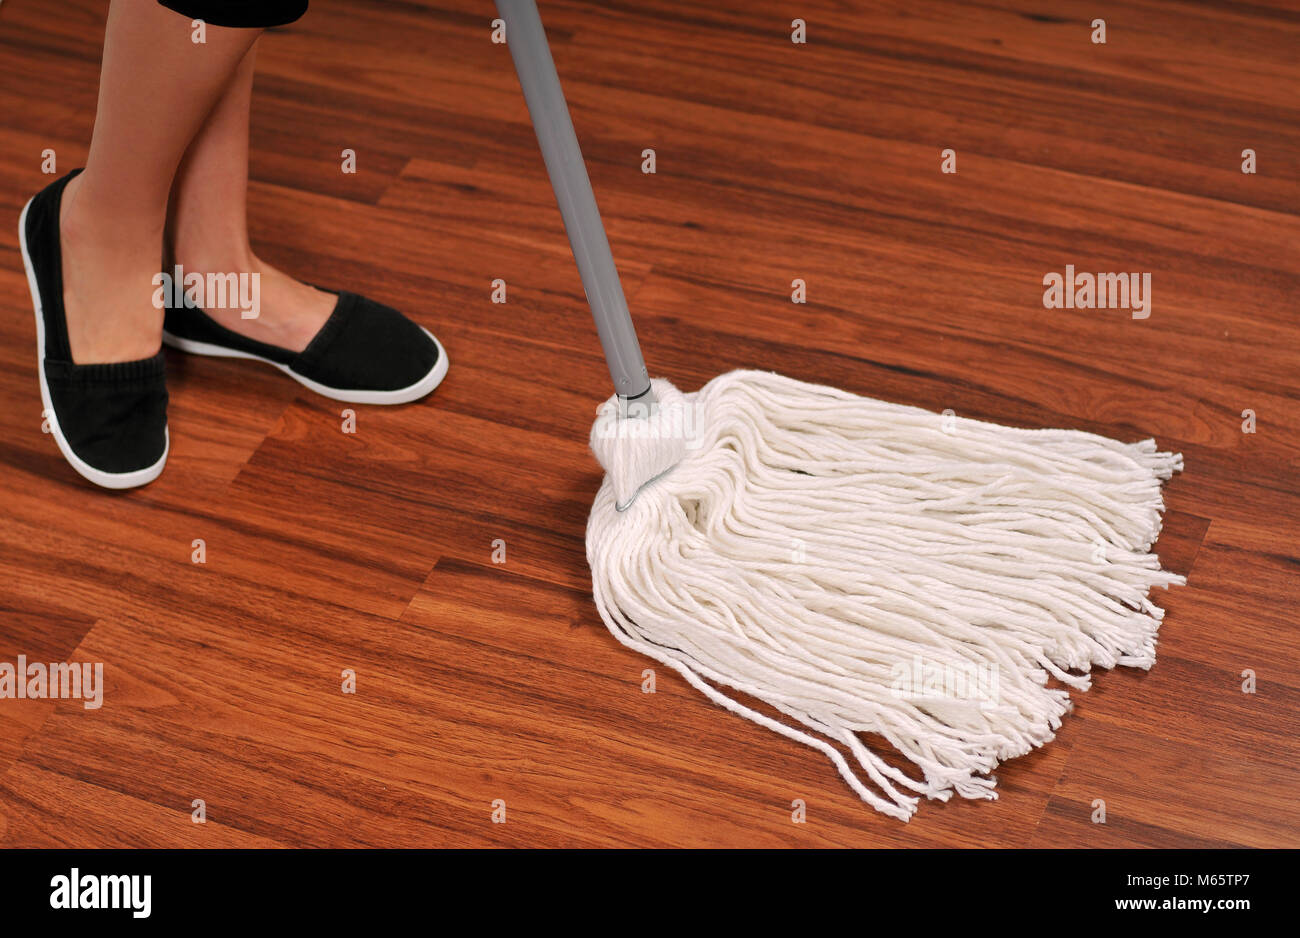 Cleaning service, mop for cleaning wooden floor from dust - Stock Image